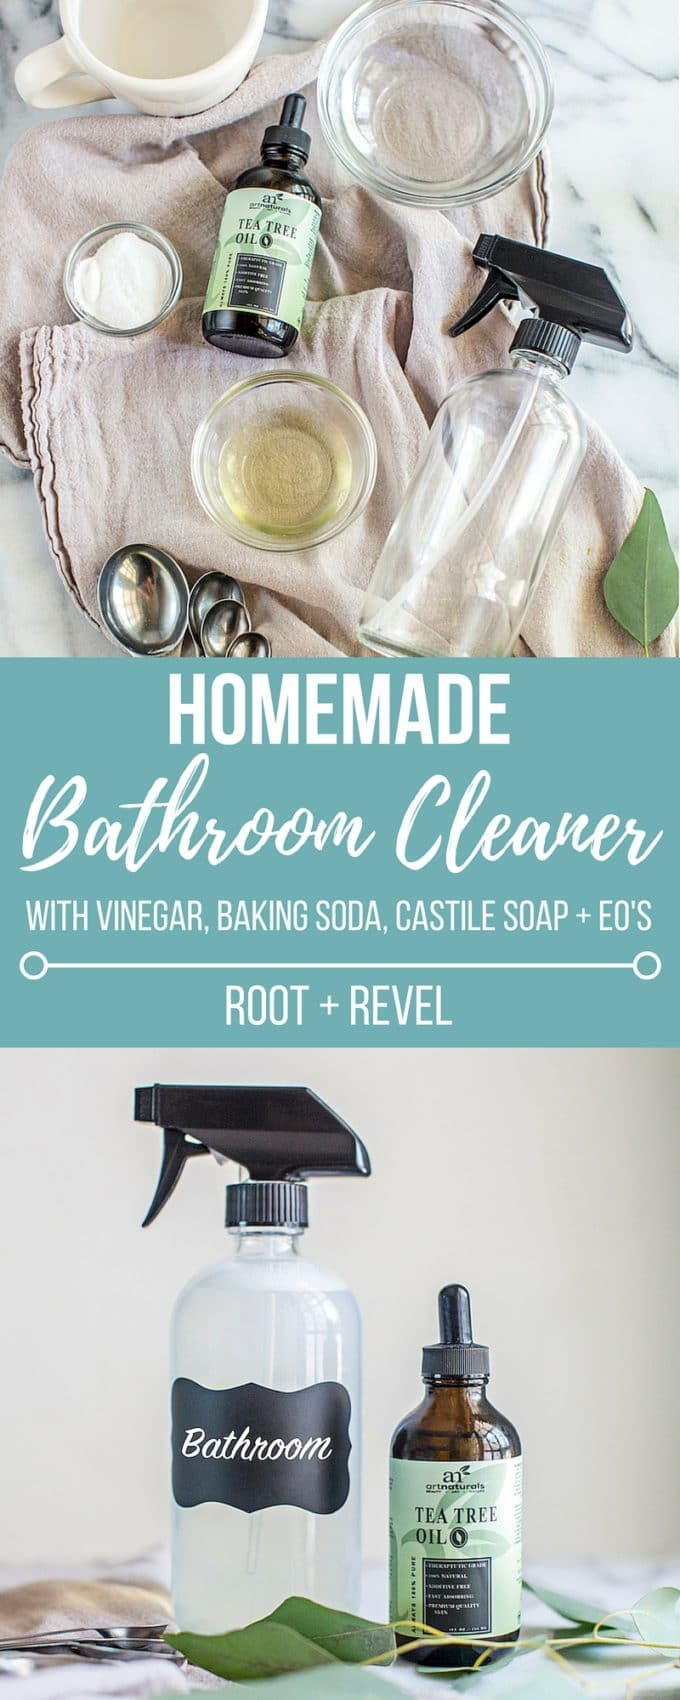 Homemade Bathroom Cleaner Root Revel - Best non toxic bathroom cleaner